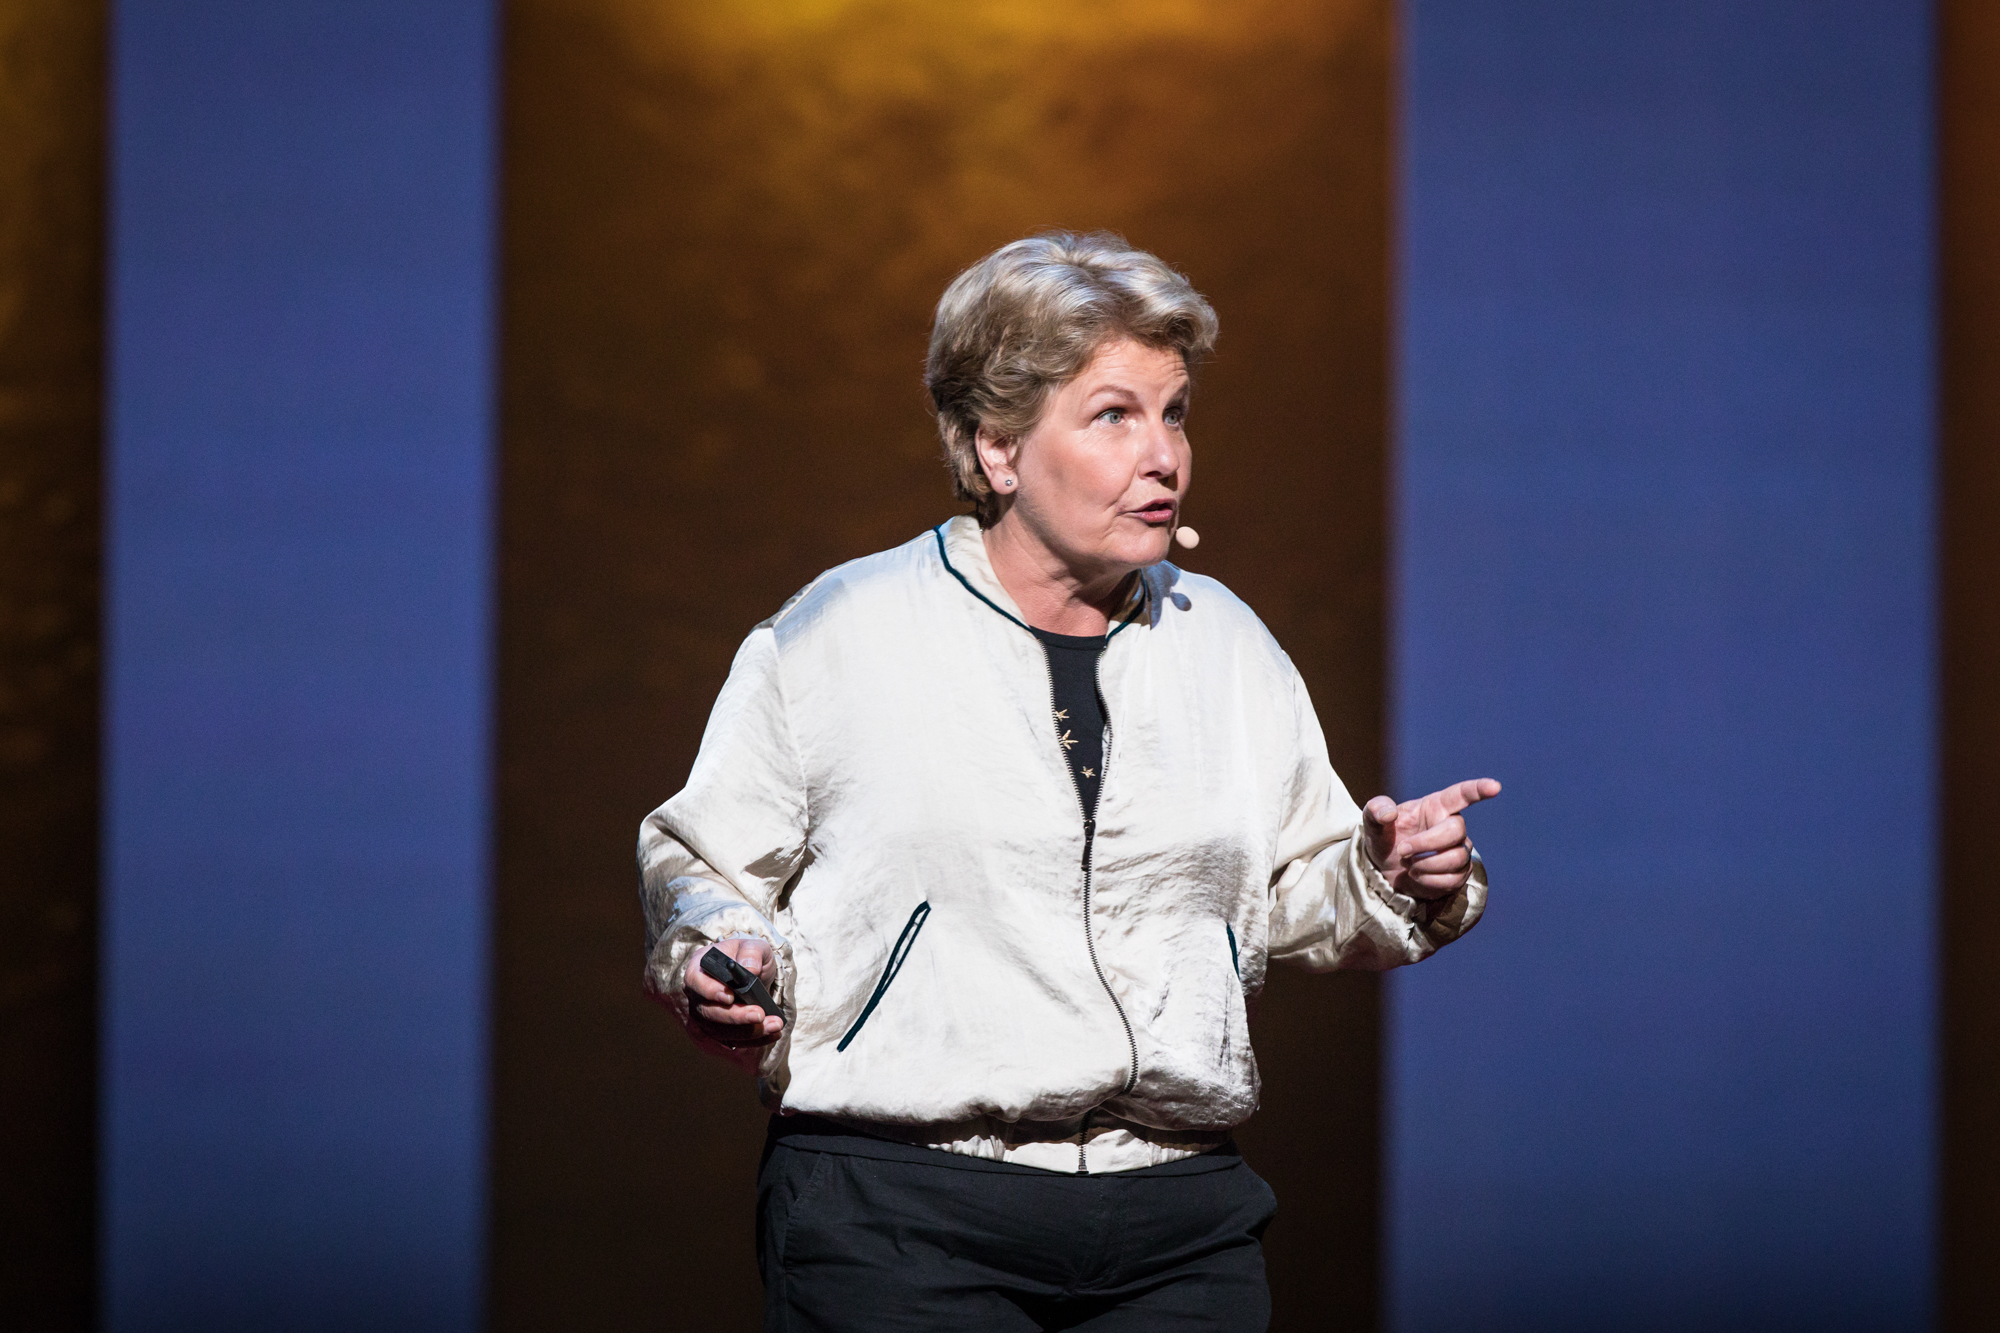 Sandi Toksvig at TEDWomen 2016 - It's About Time, October 26-28, 2016, Yerba Buena Centre for the Arts, San Francisco, California. Photo: Marla Aufmuth / TED